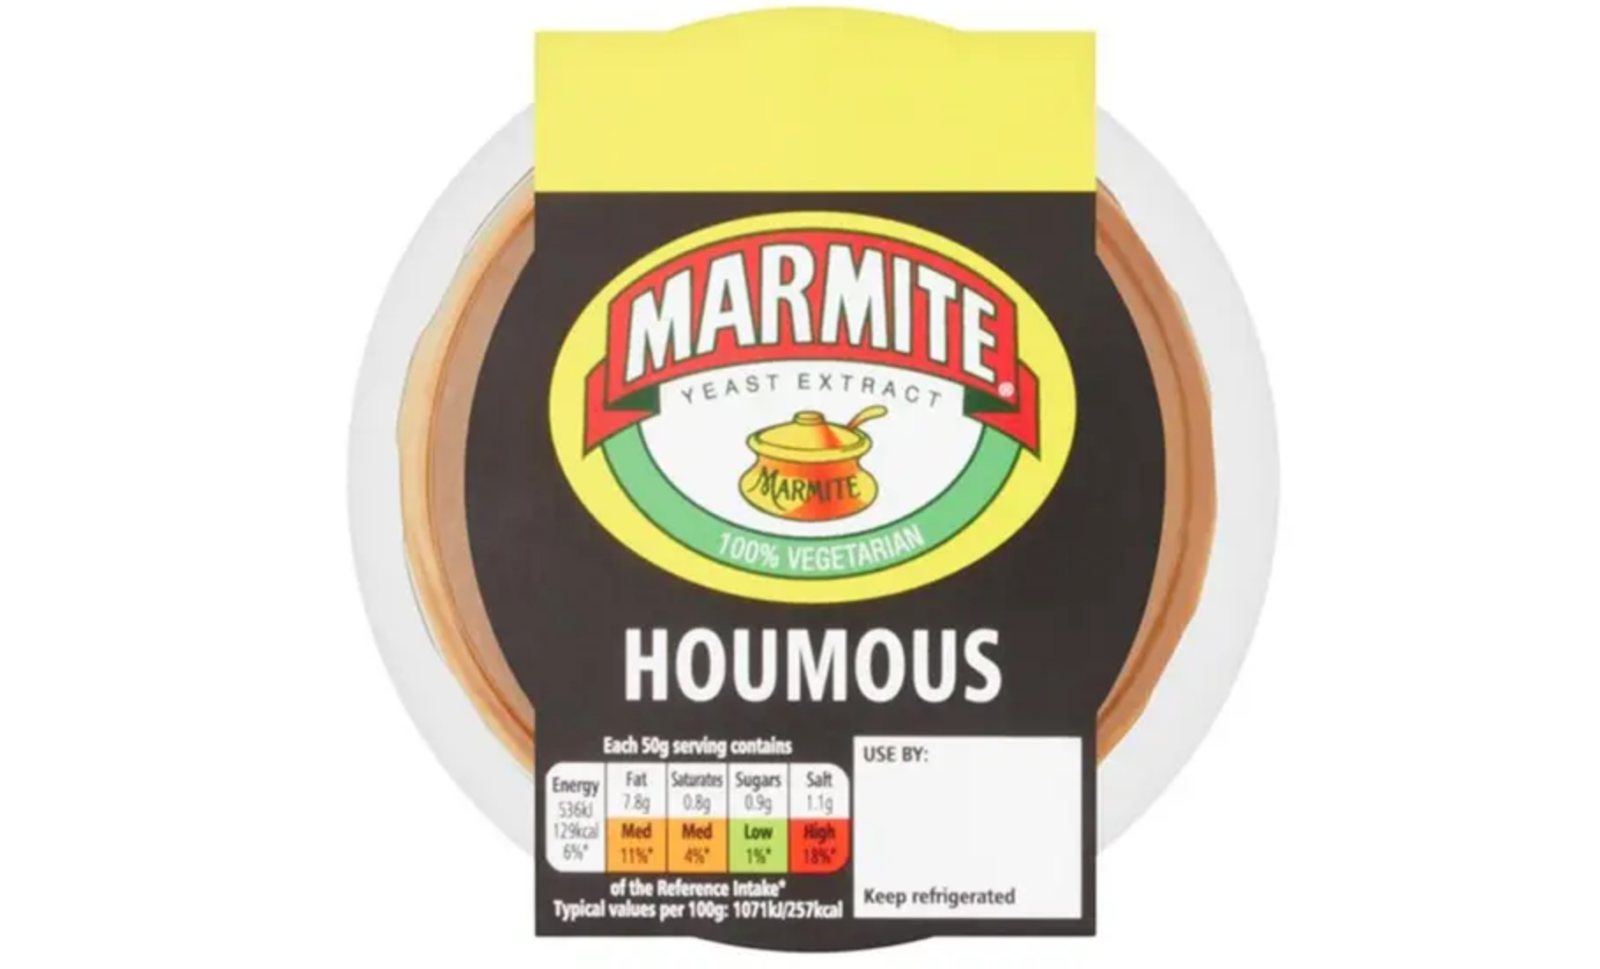 Marmite Houmous is now a thing and you can buy it from UK supermarkets this week, The Manc